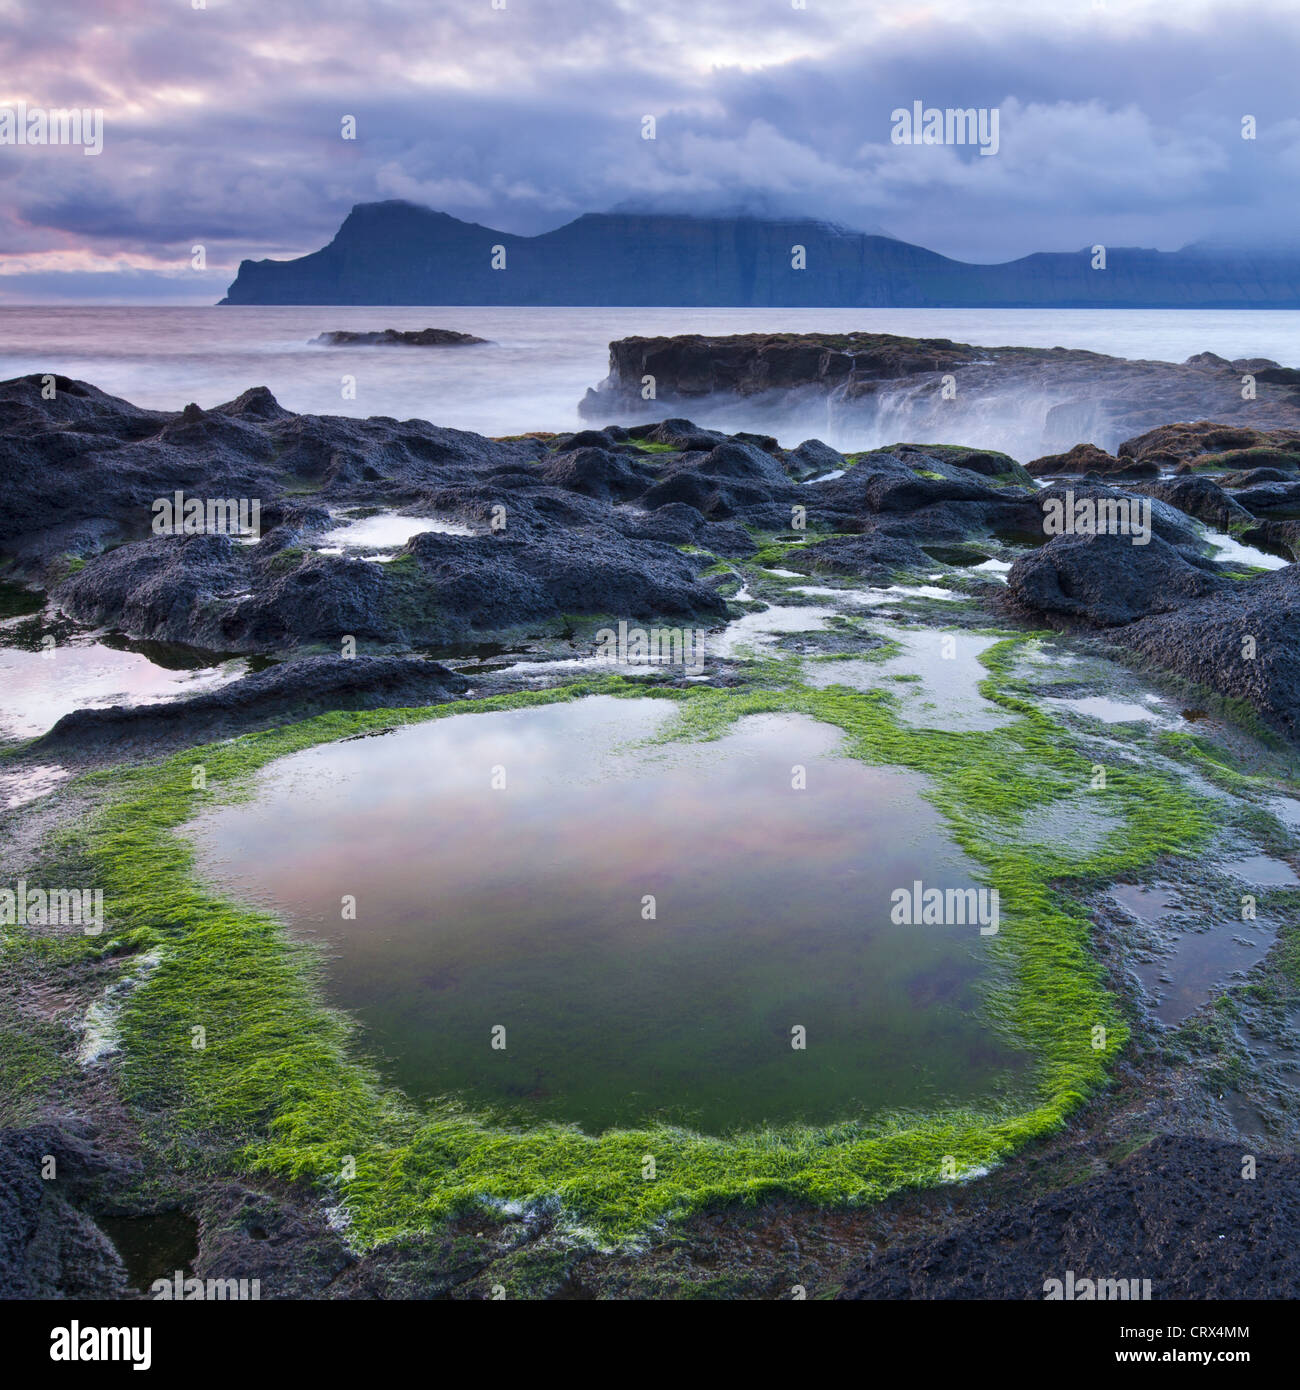 Rockpools on the shores of Gjogv on Eysturoy, looking towards the mountainous island of Kalsoy. Faroe Islands. - Stock Image